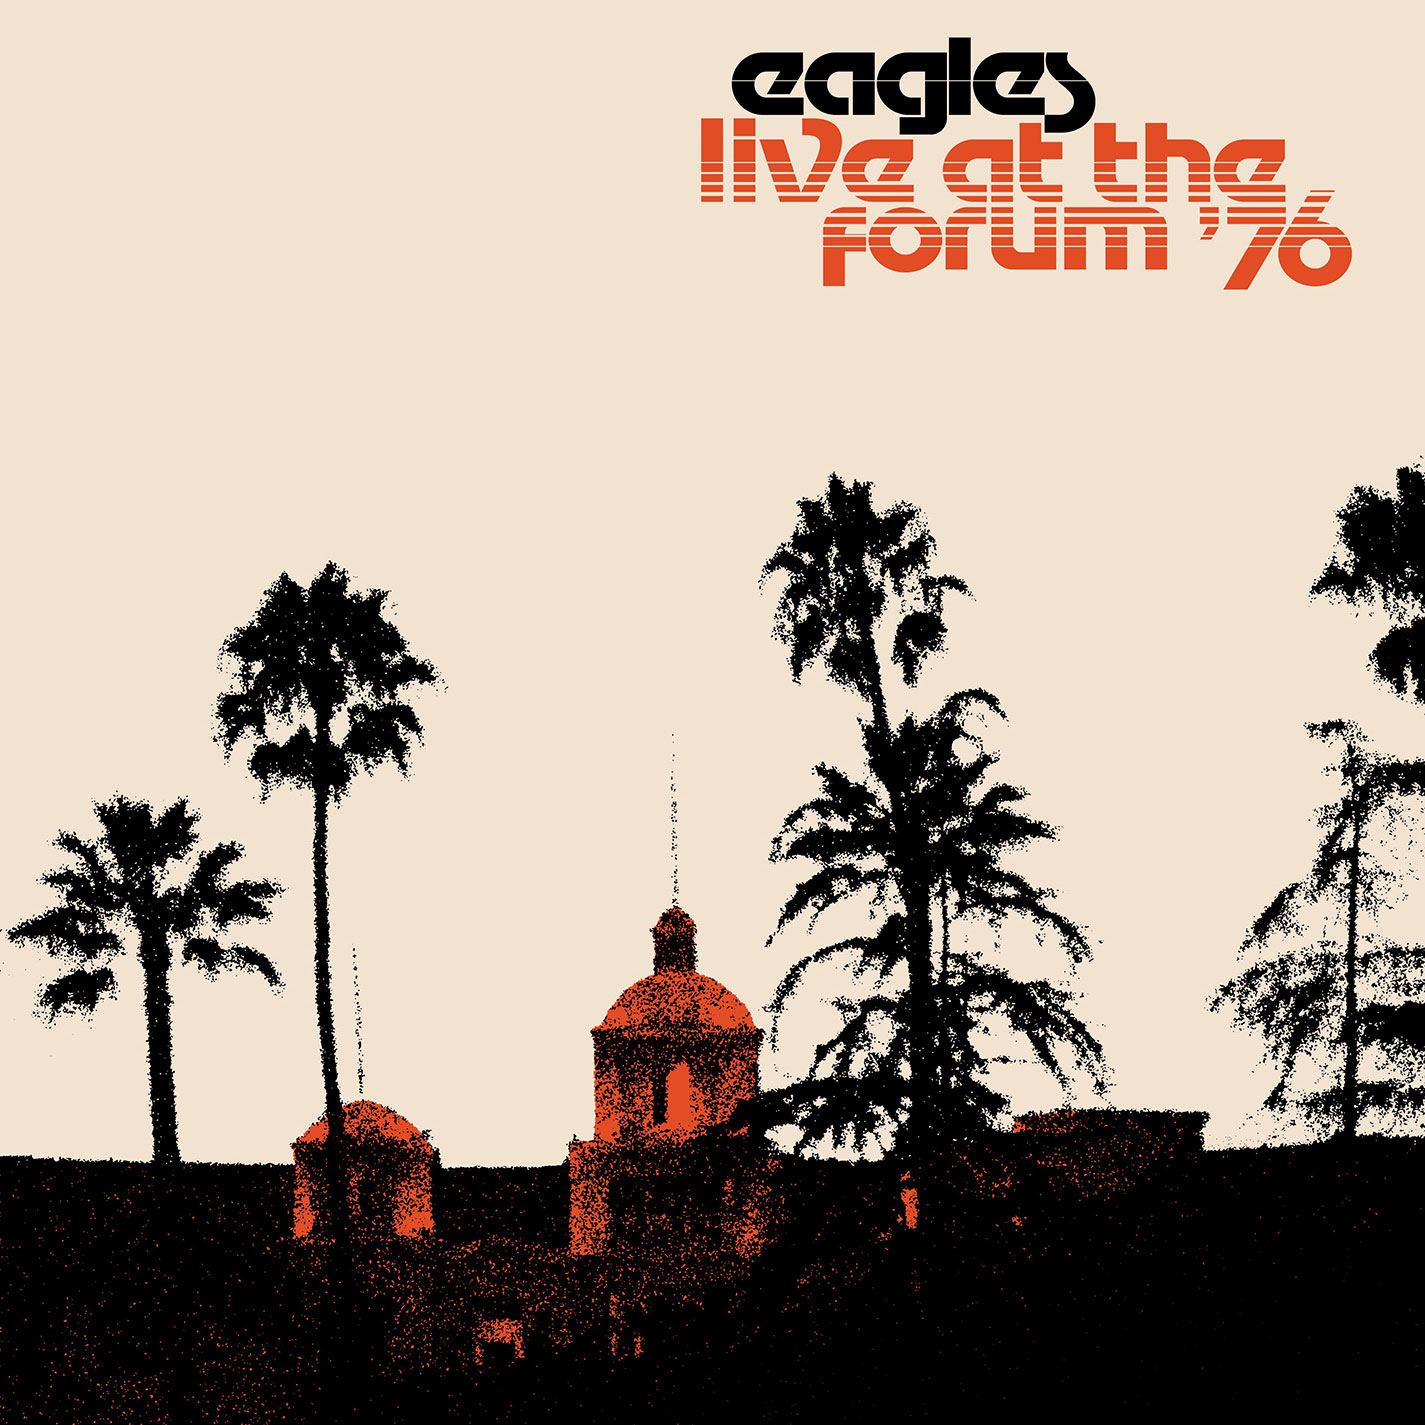 Eagles Live At The Forum '76 180g 2LP